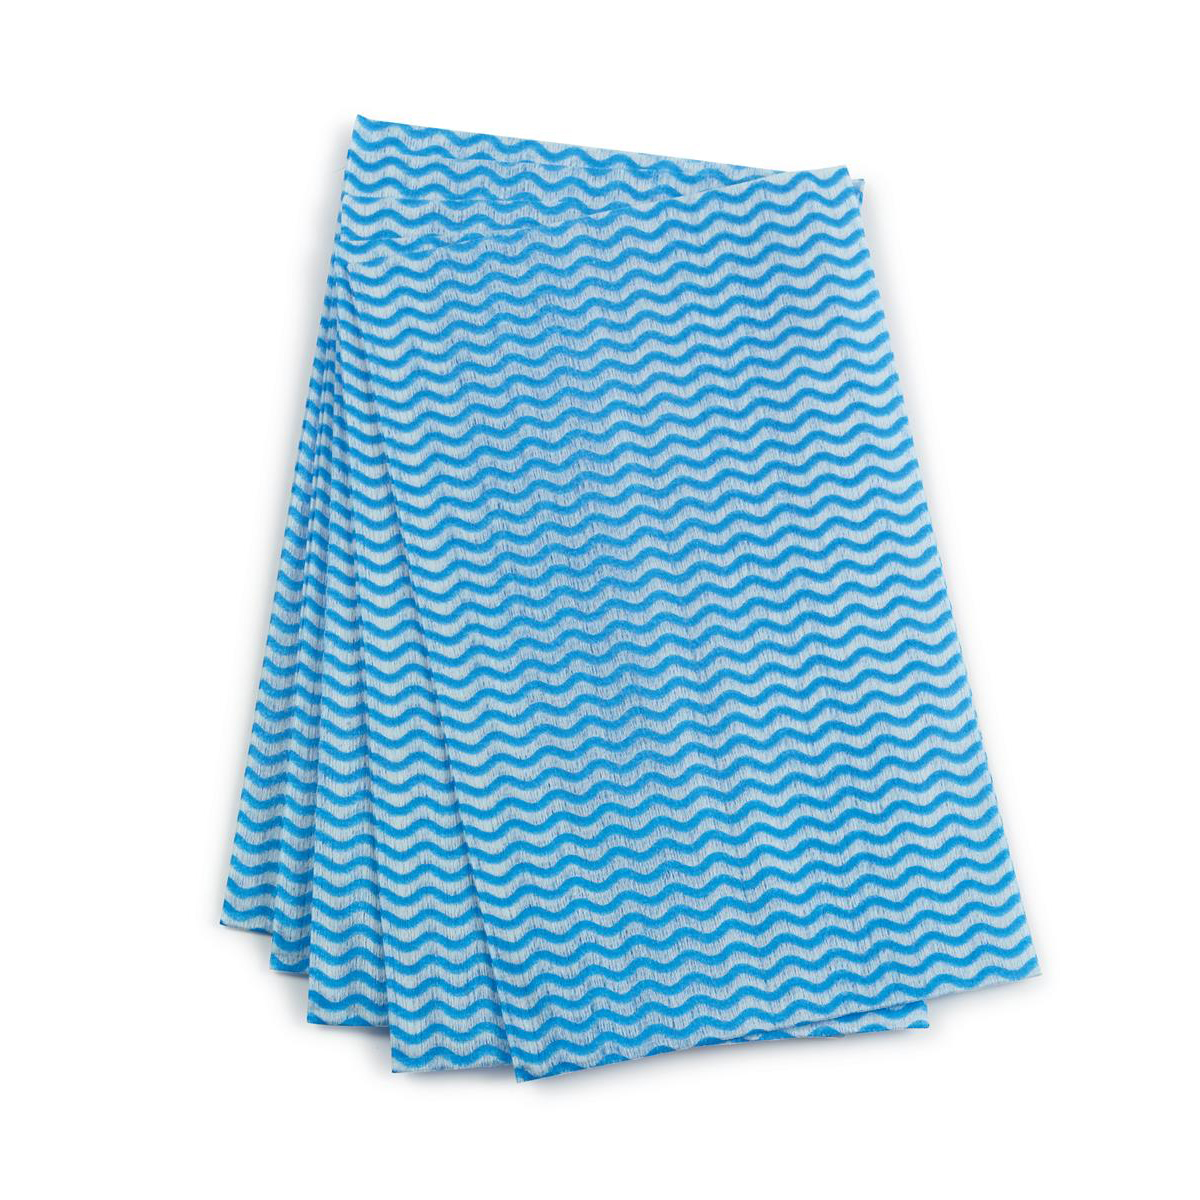 5 Star Facilities Cleaning Cloths Anti-microbial 40gsm W500xL300mm Wavy Line Blue Pack 50